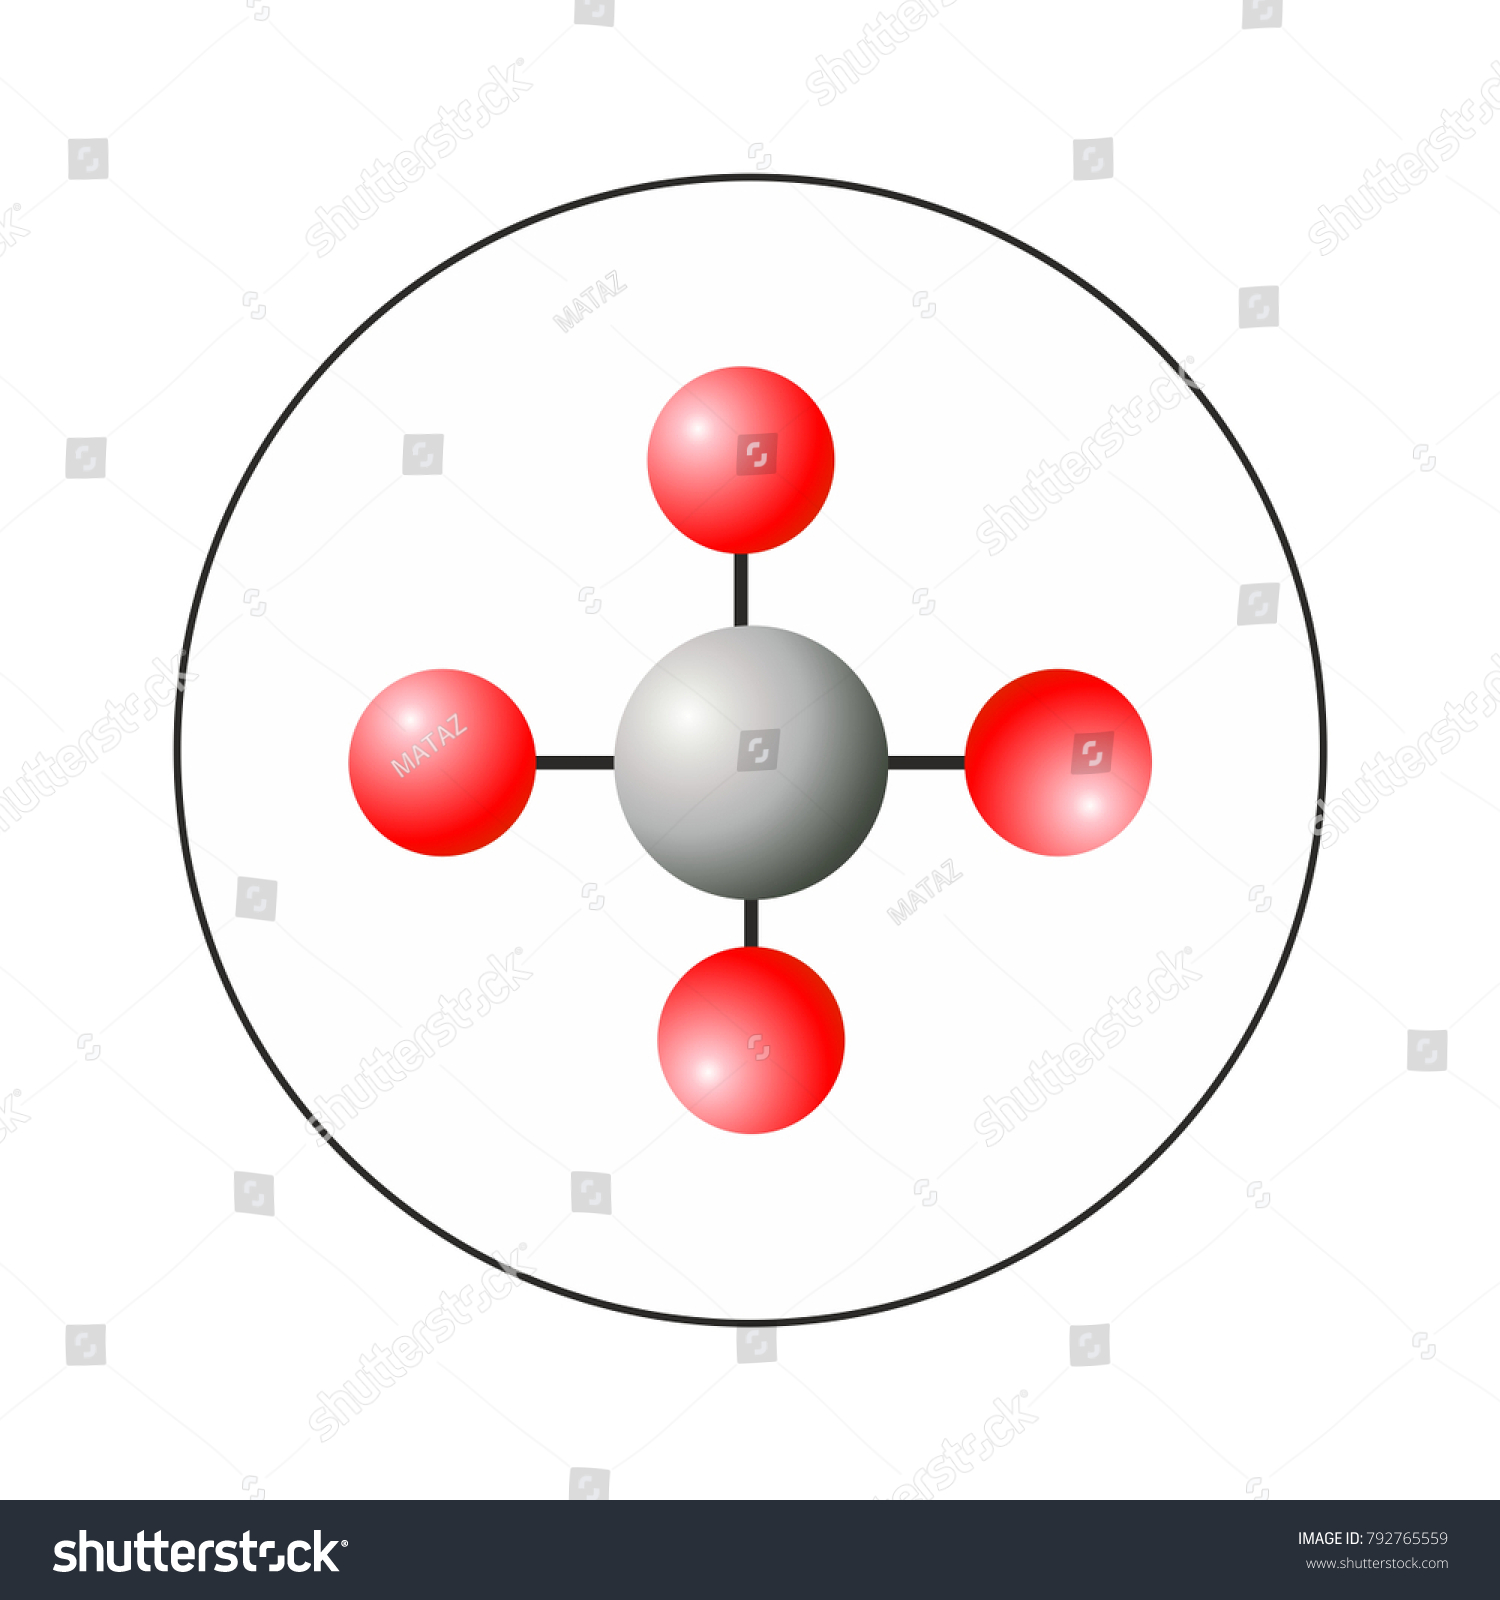 Ch4 methane molecule 3d model chemicel stock vector 792765559 ch4 methane molecule 3d model chemicel icon sign symbol for web and print biocorpaavc Gallery